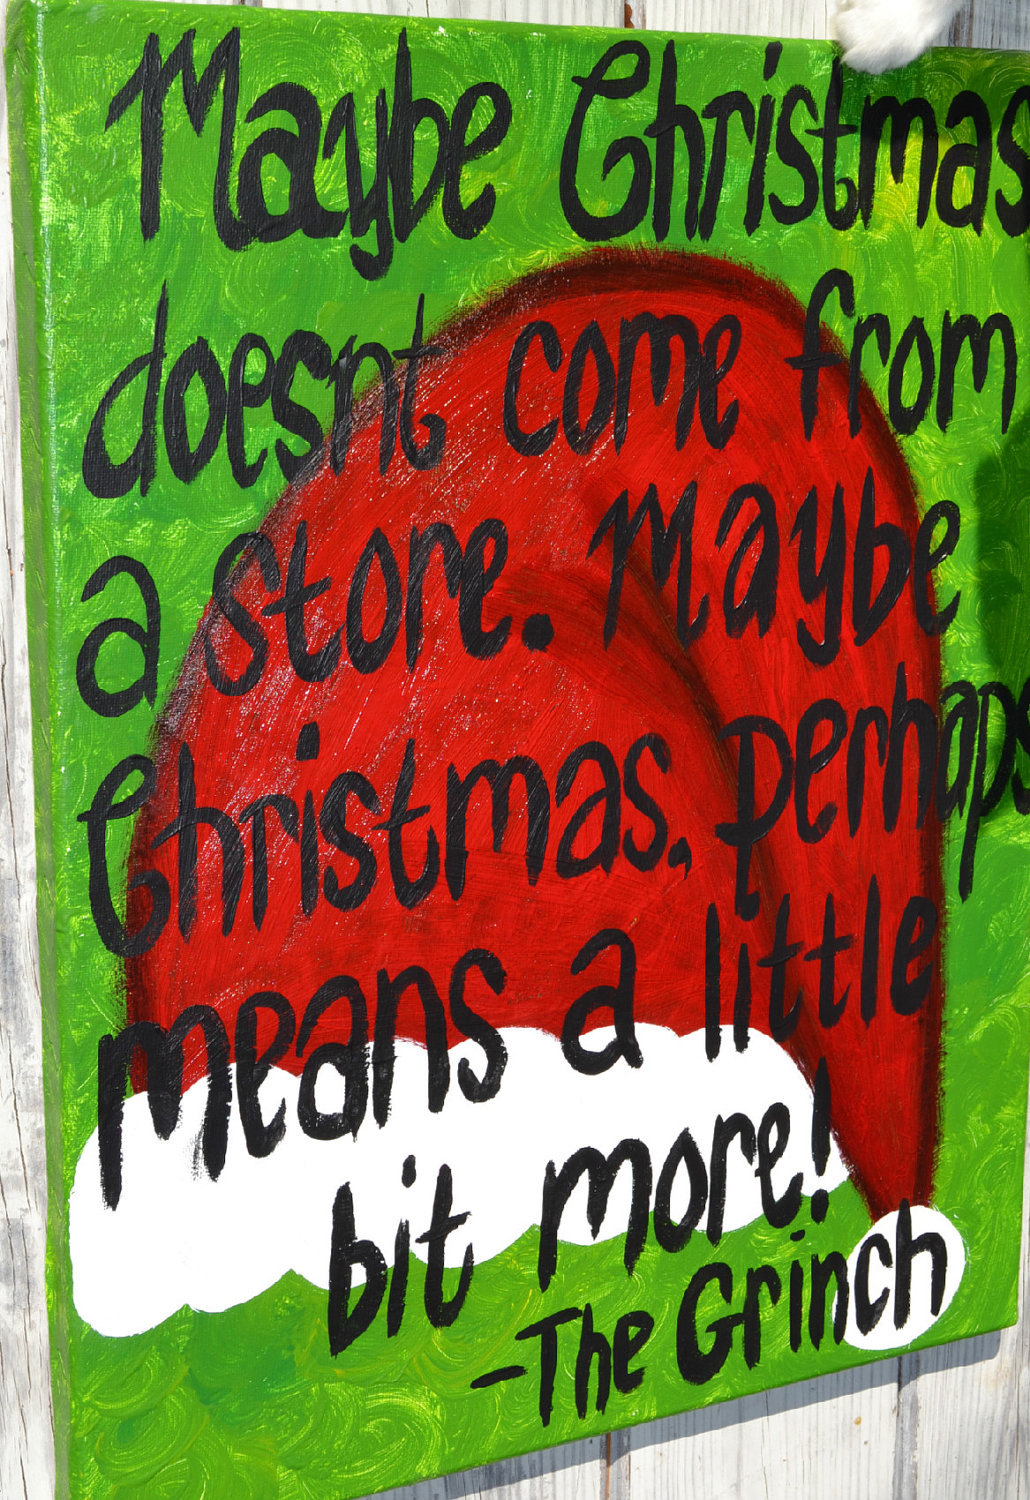 Quotes By The Grinch. QuotesGram